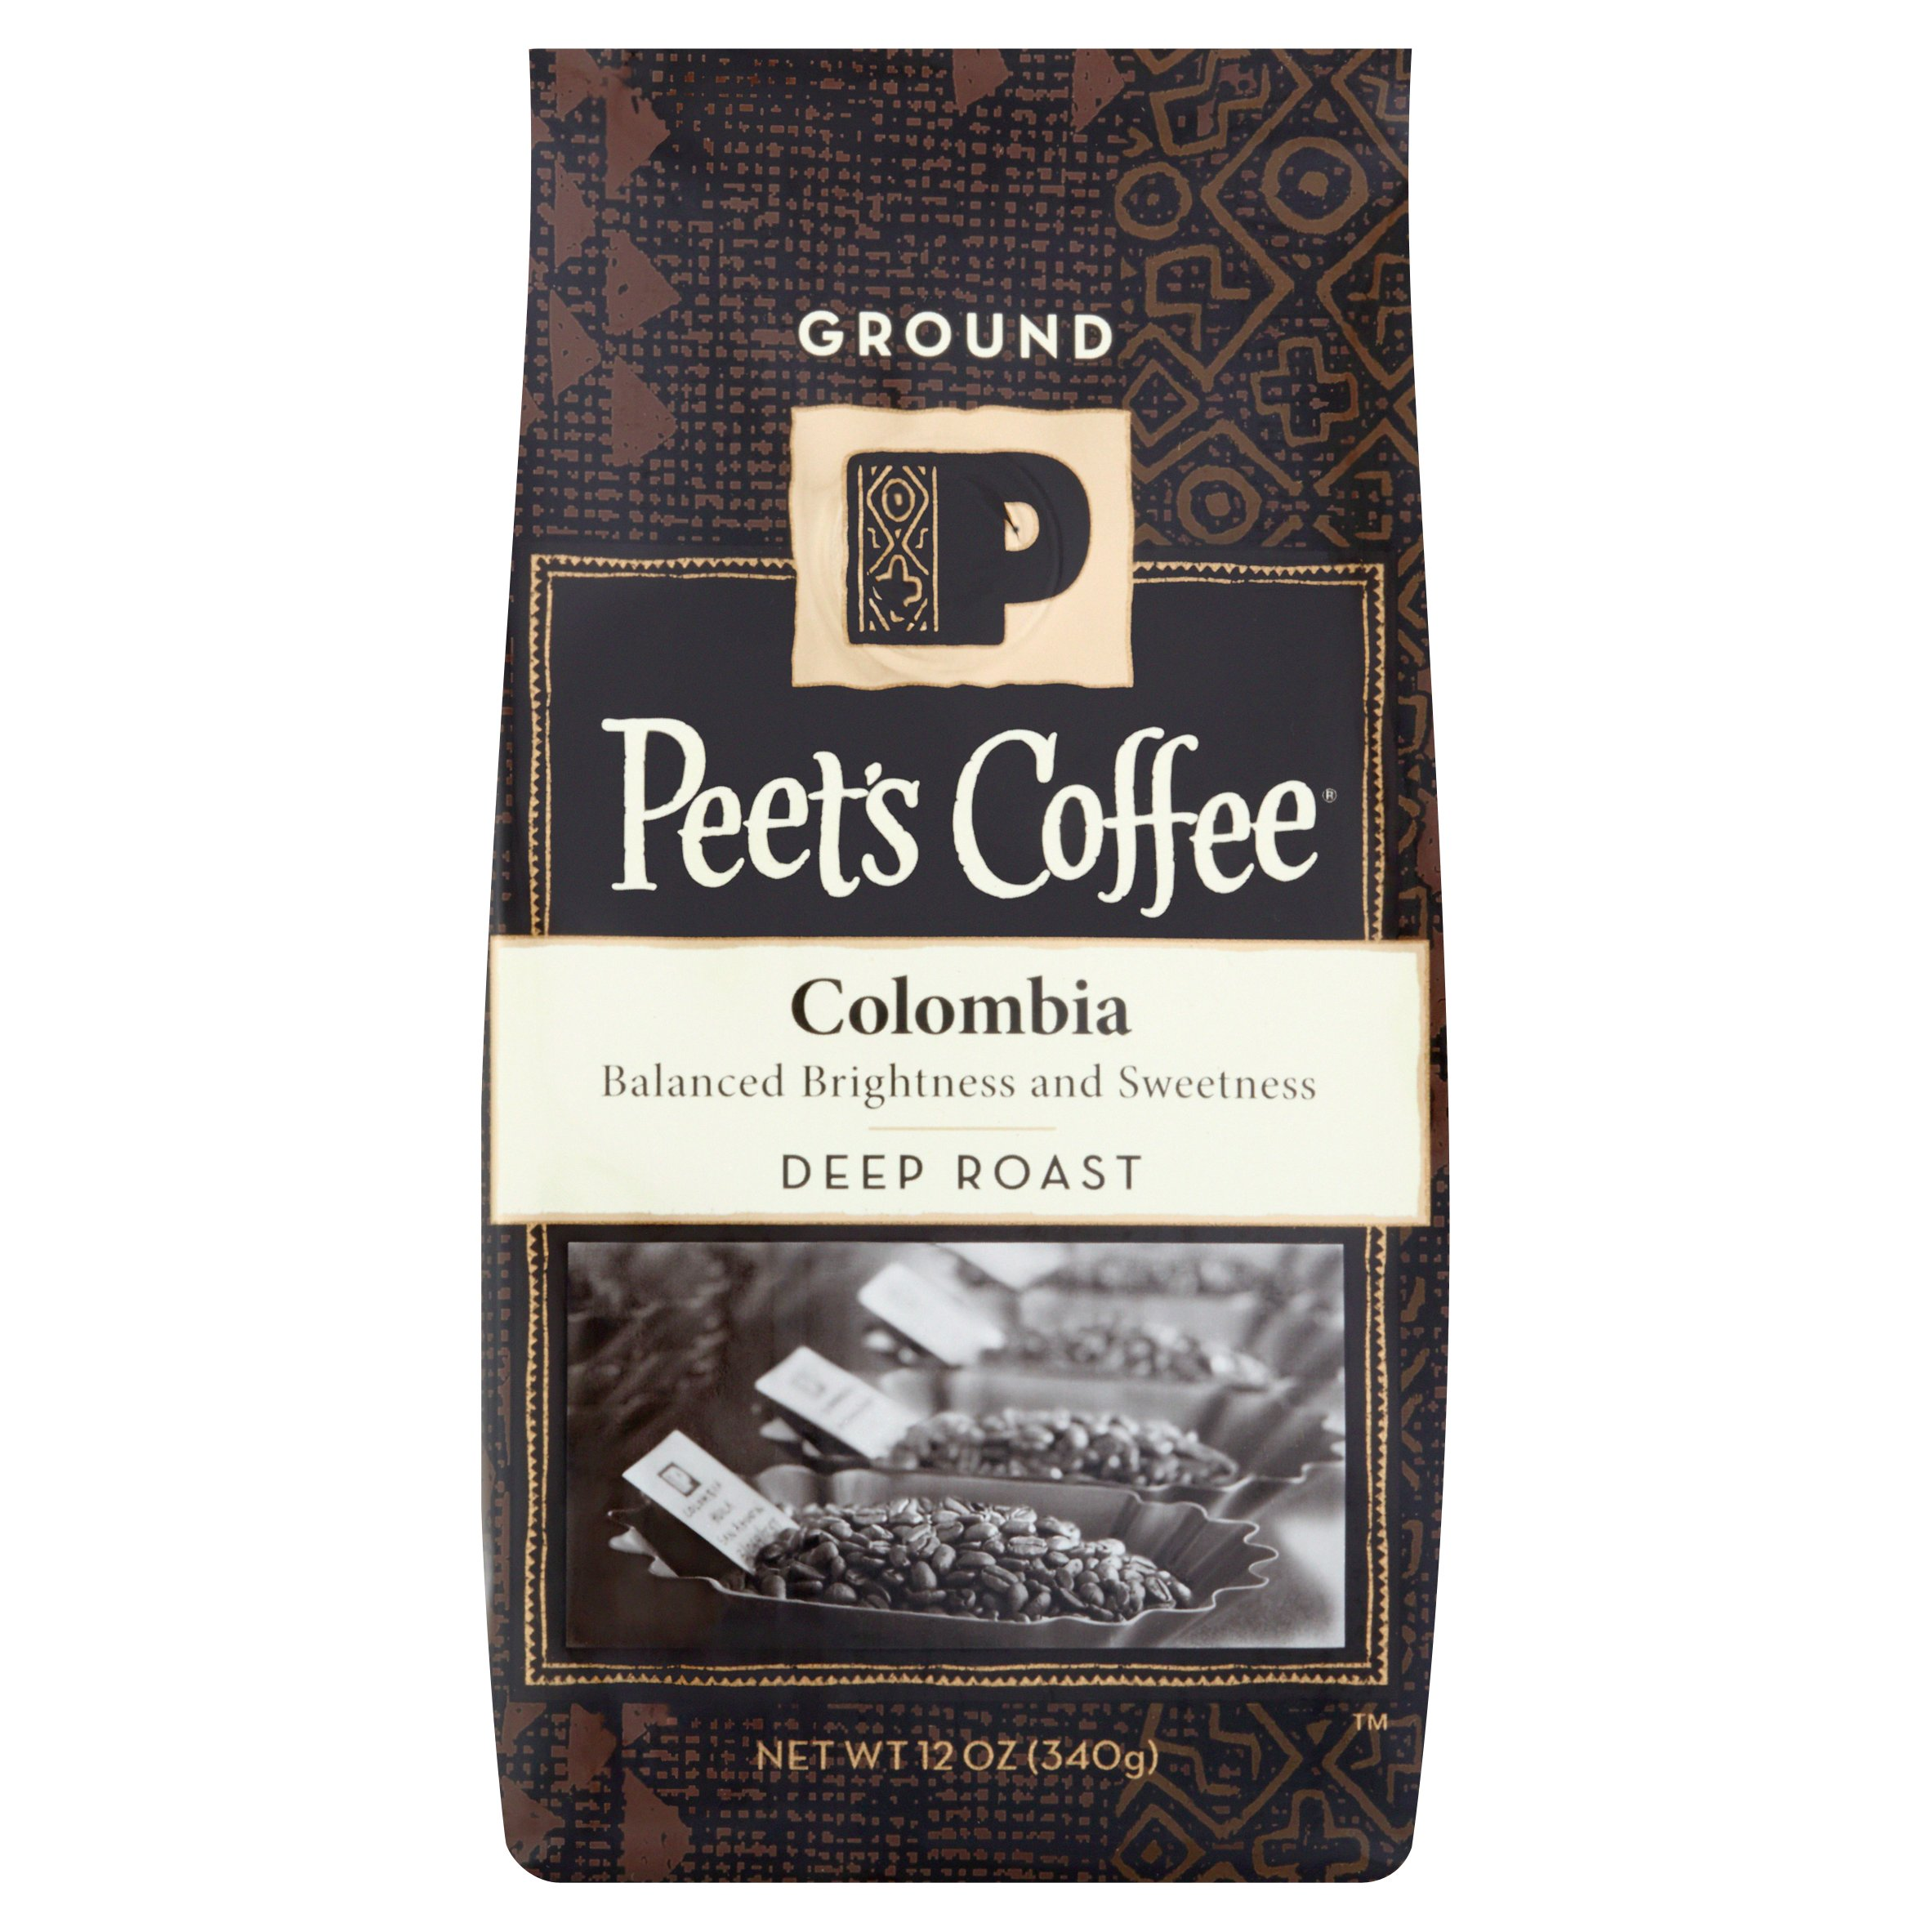 Peet's Coffee Colombia Deep Roast Ground Coffee, 12 oz